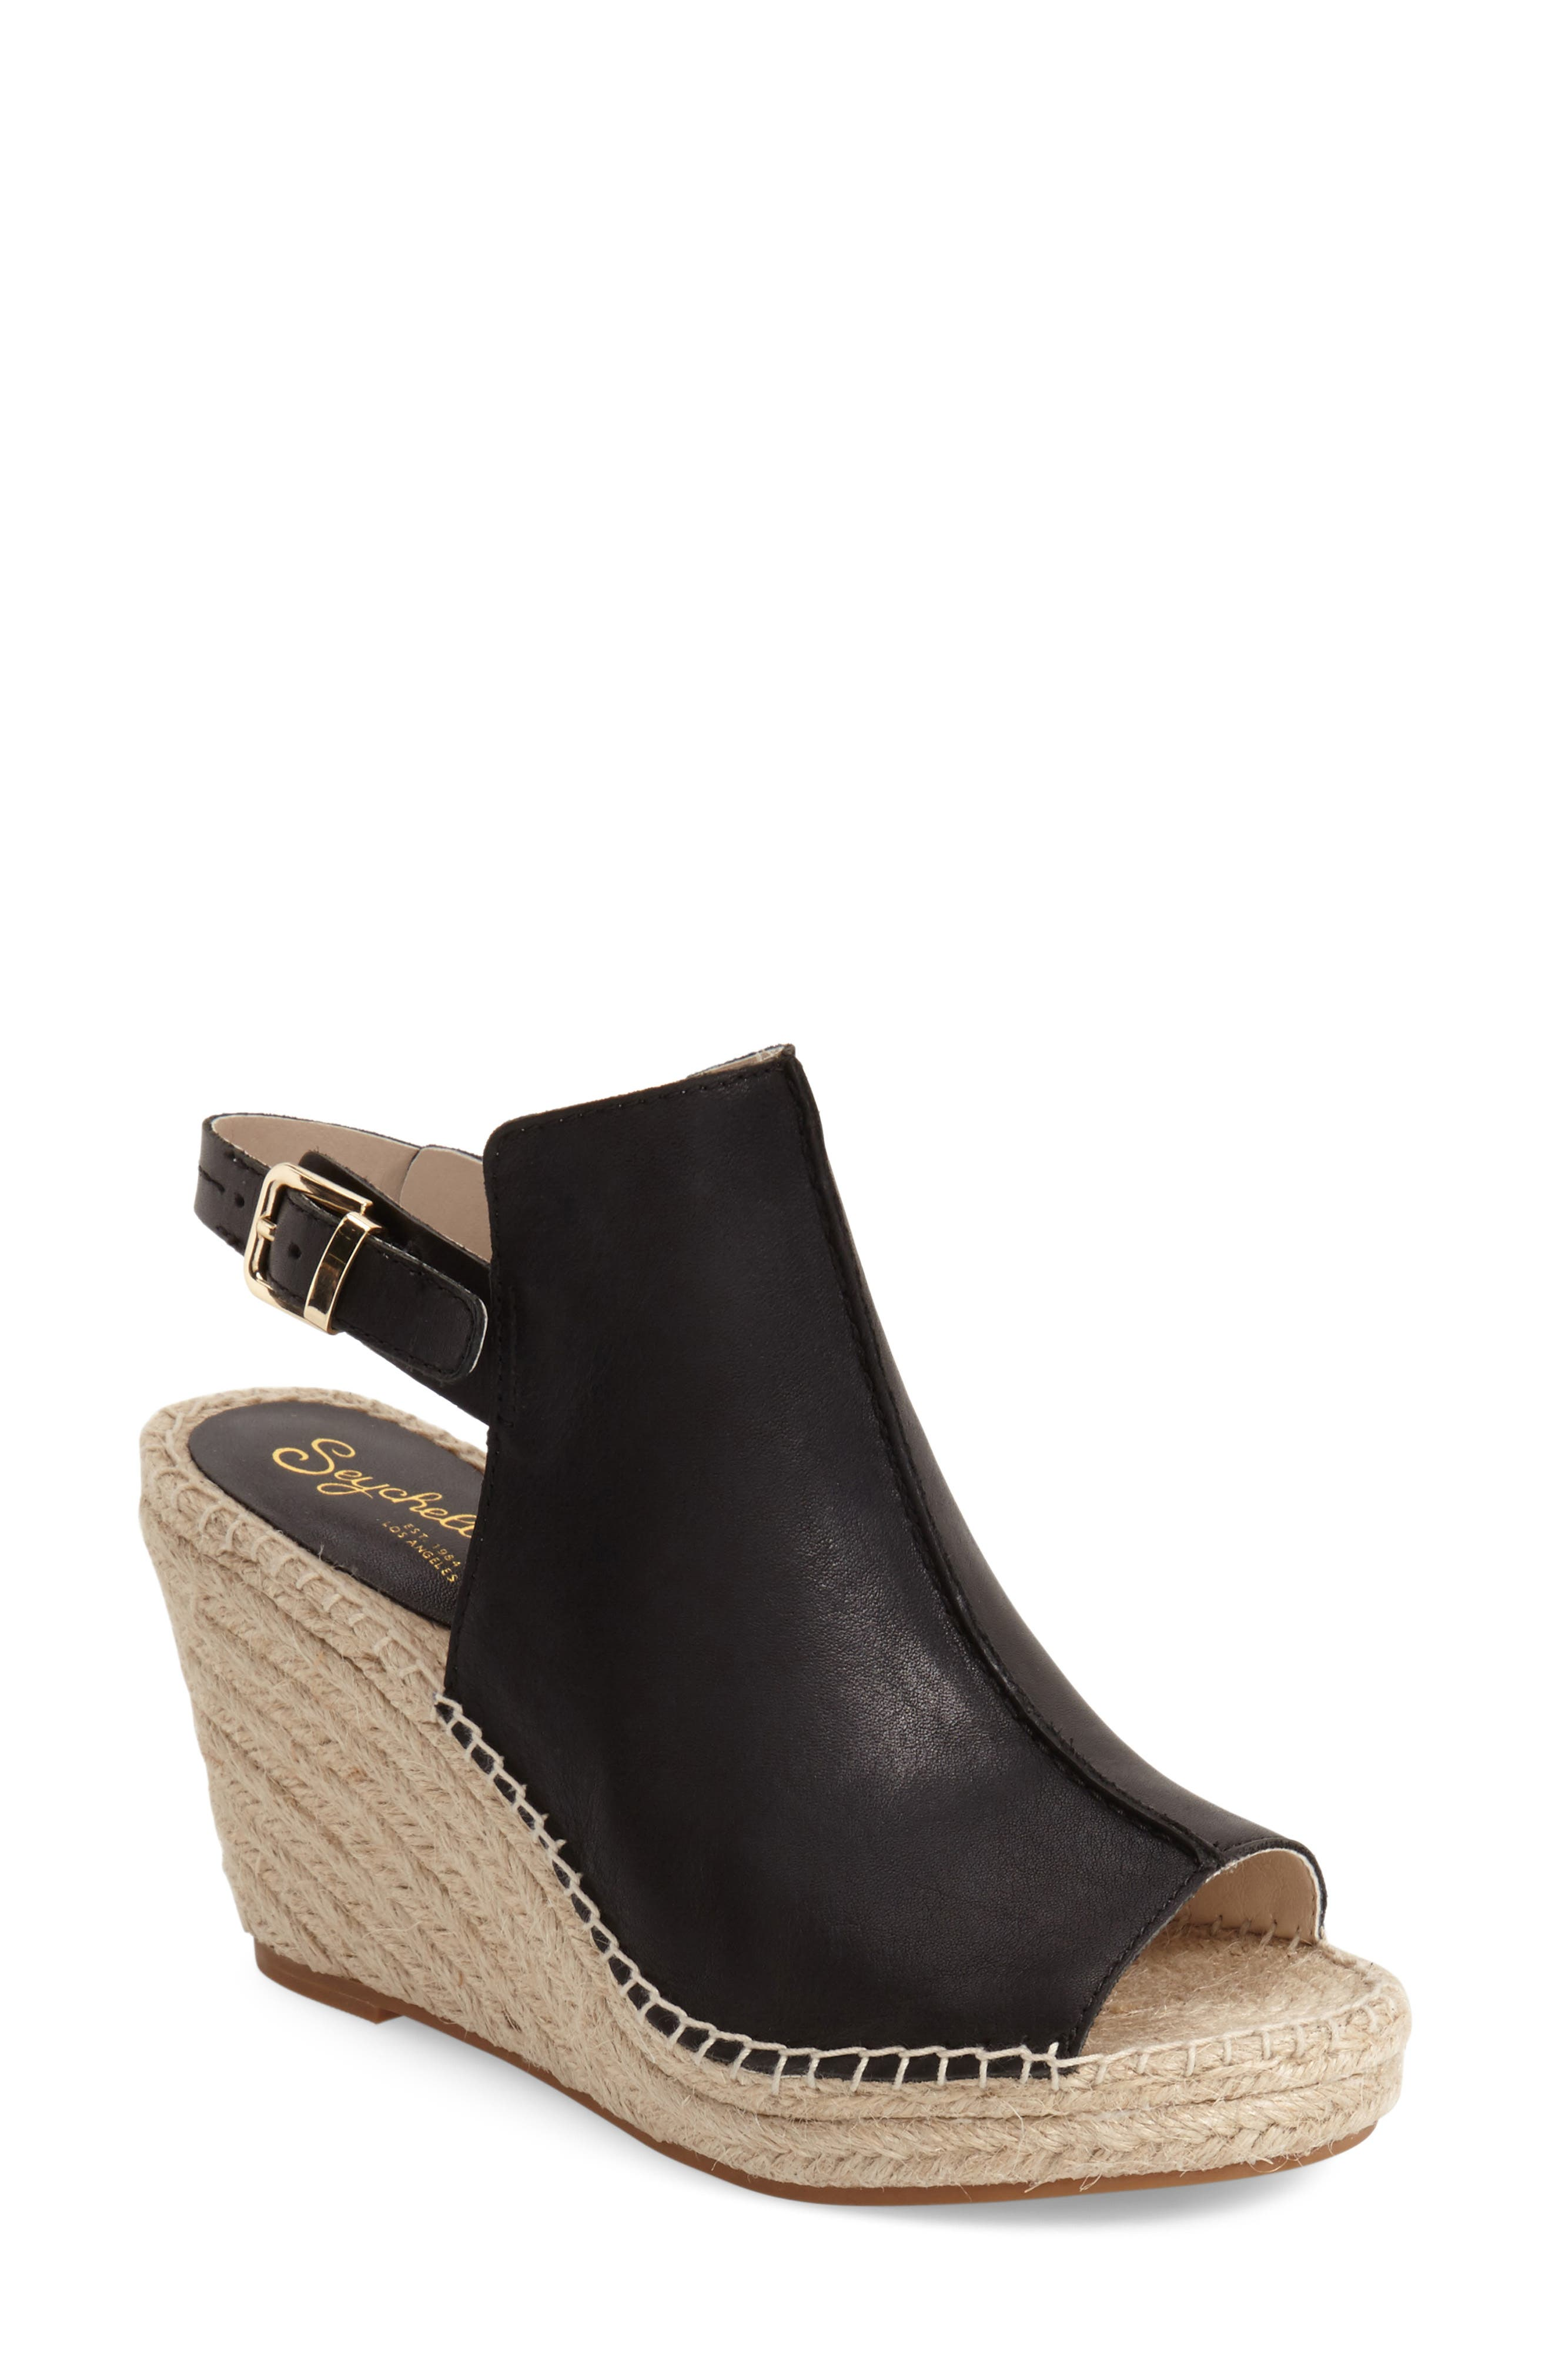 'Charismatic' Espadrille Wedge,                             Alternate thumbnail 3, color,                             001